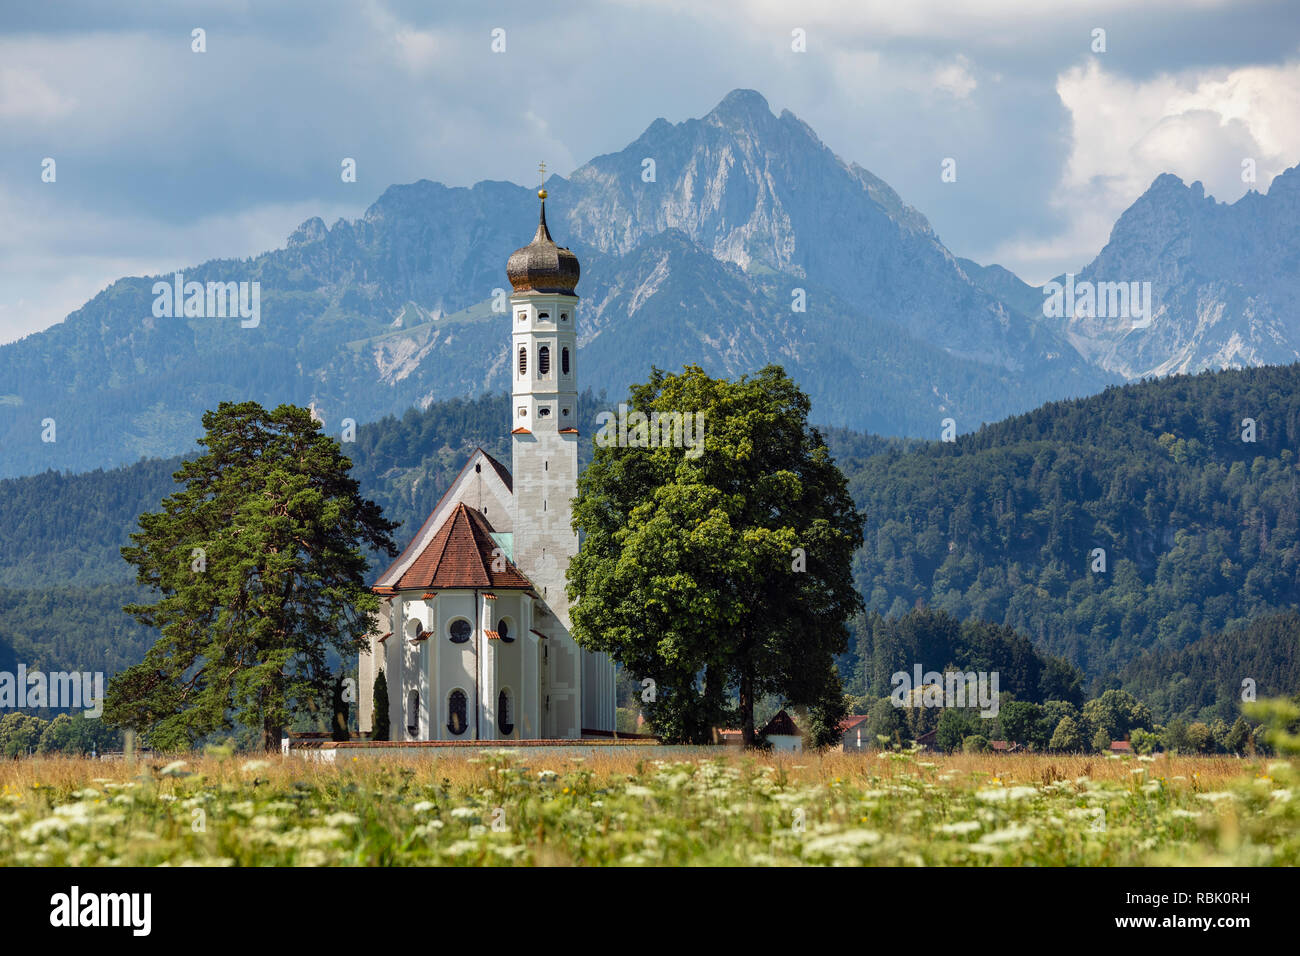 Church of St Coloman, Schwangau, Bavaria, Germany - Stock Image